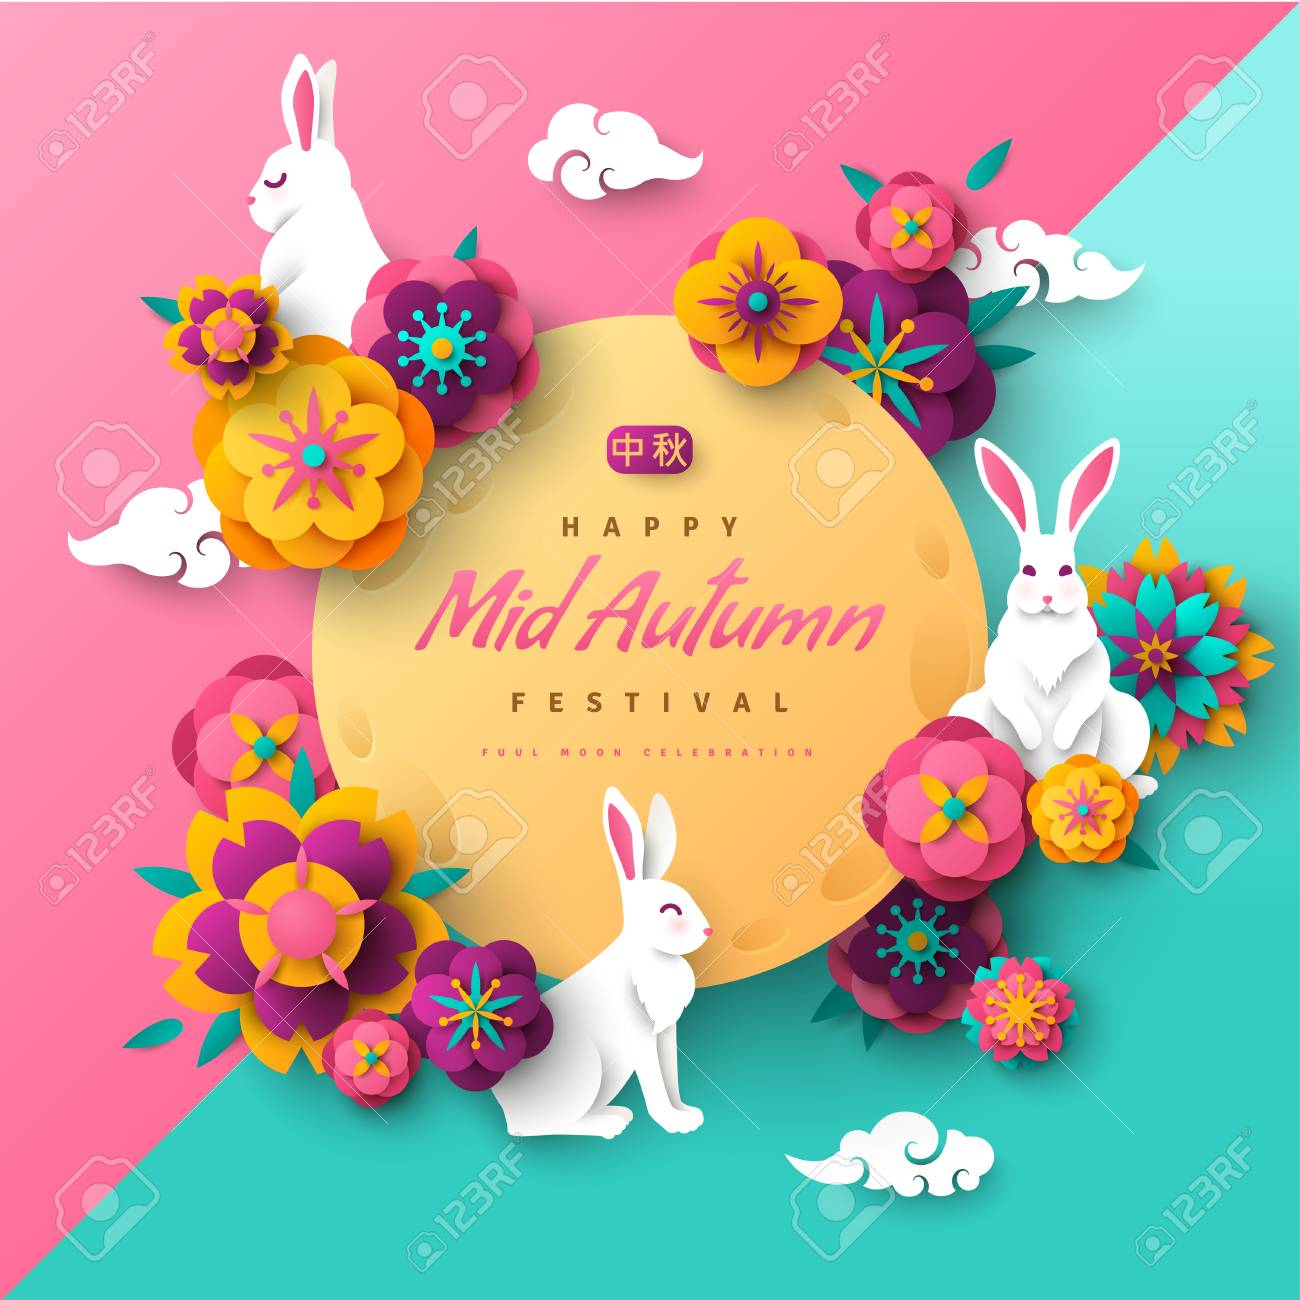 Mid autumn banner with rabbits - 102935659